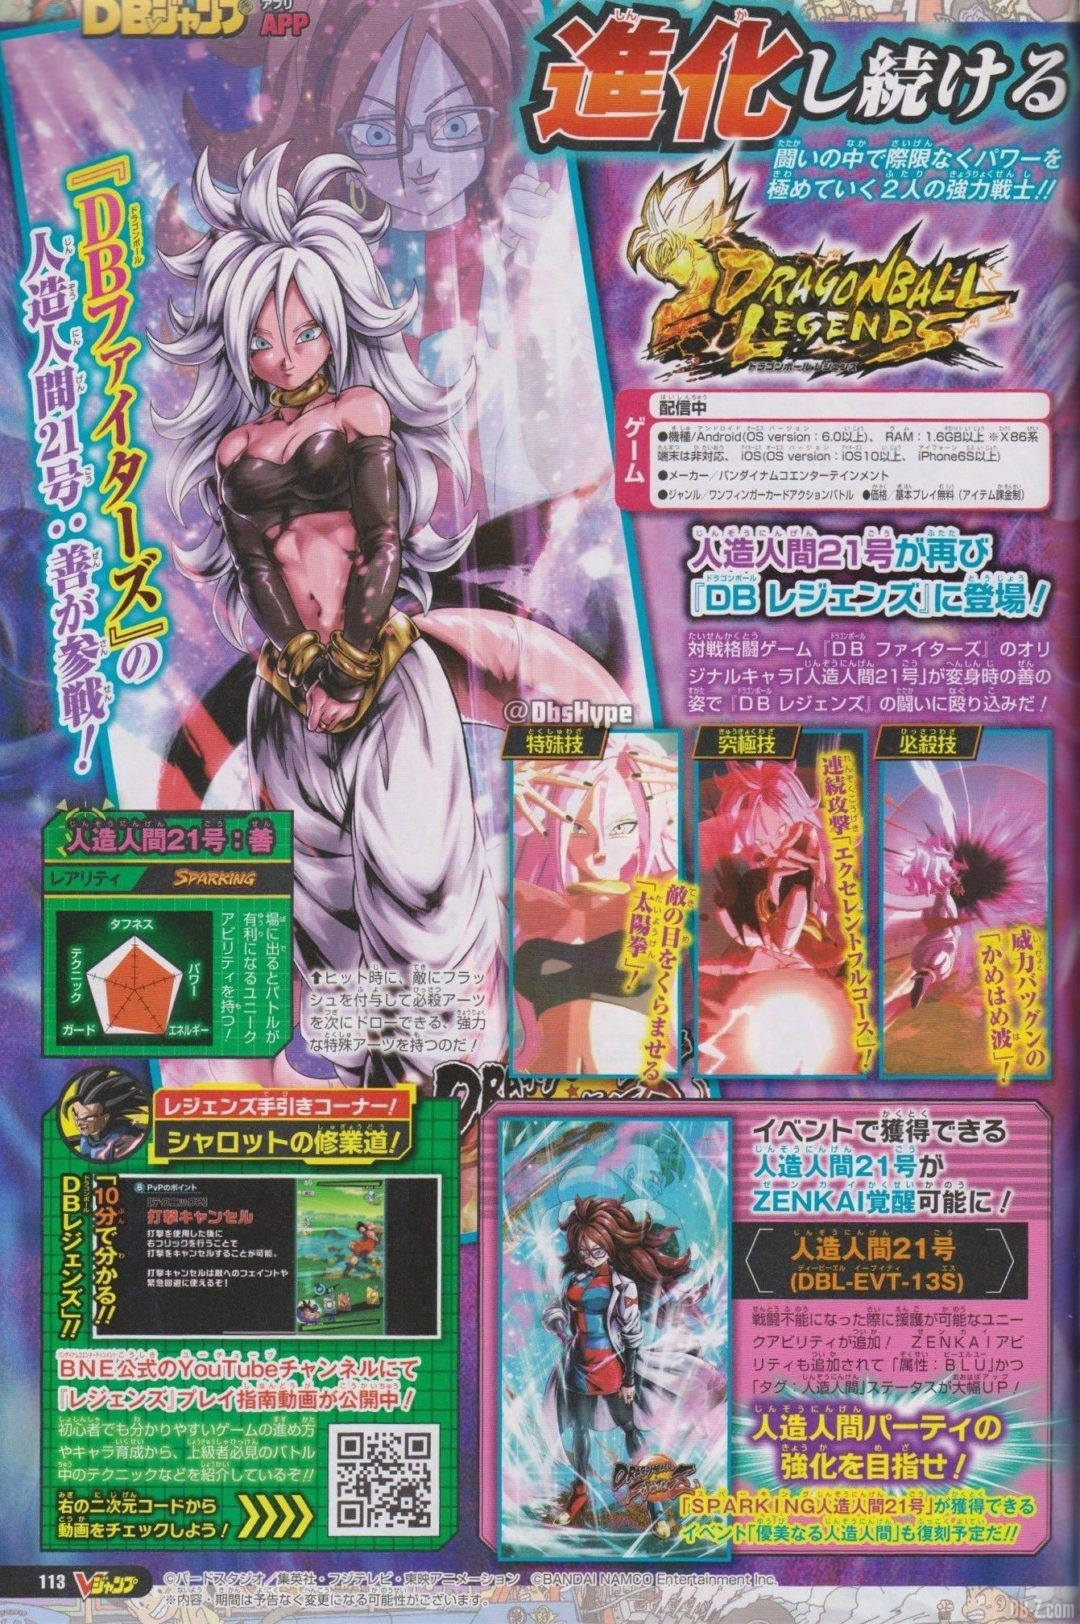 C 21 gentille Dragon Ball Legends